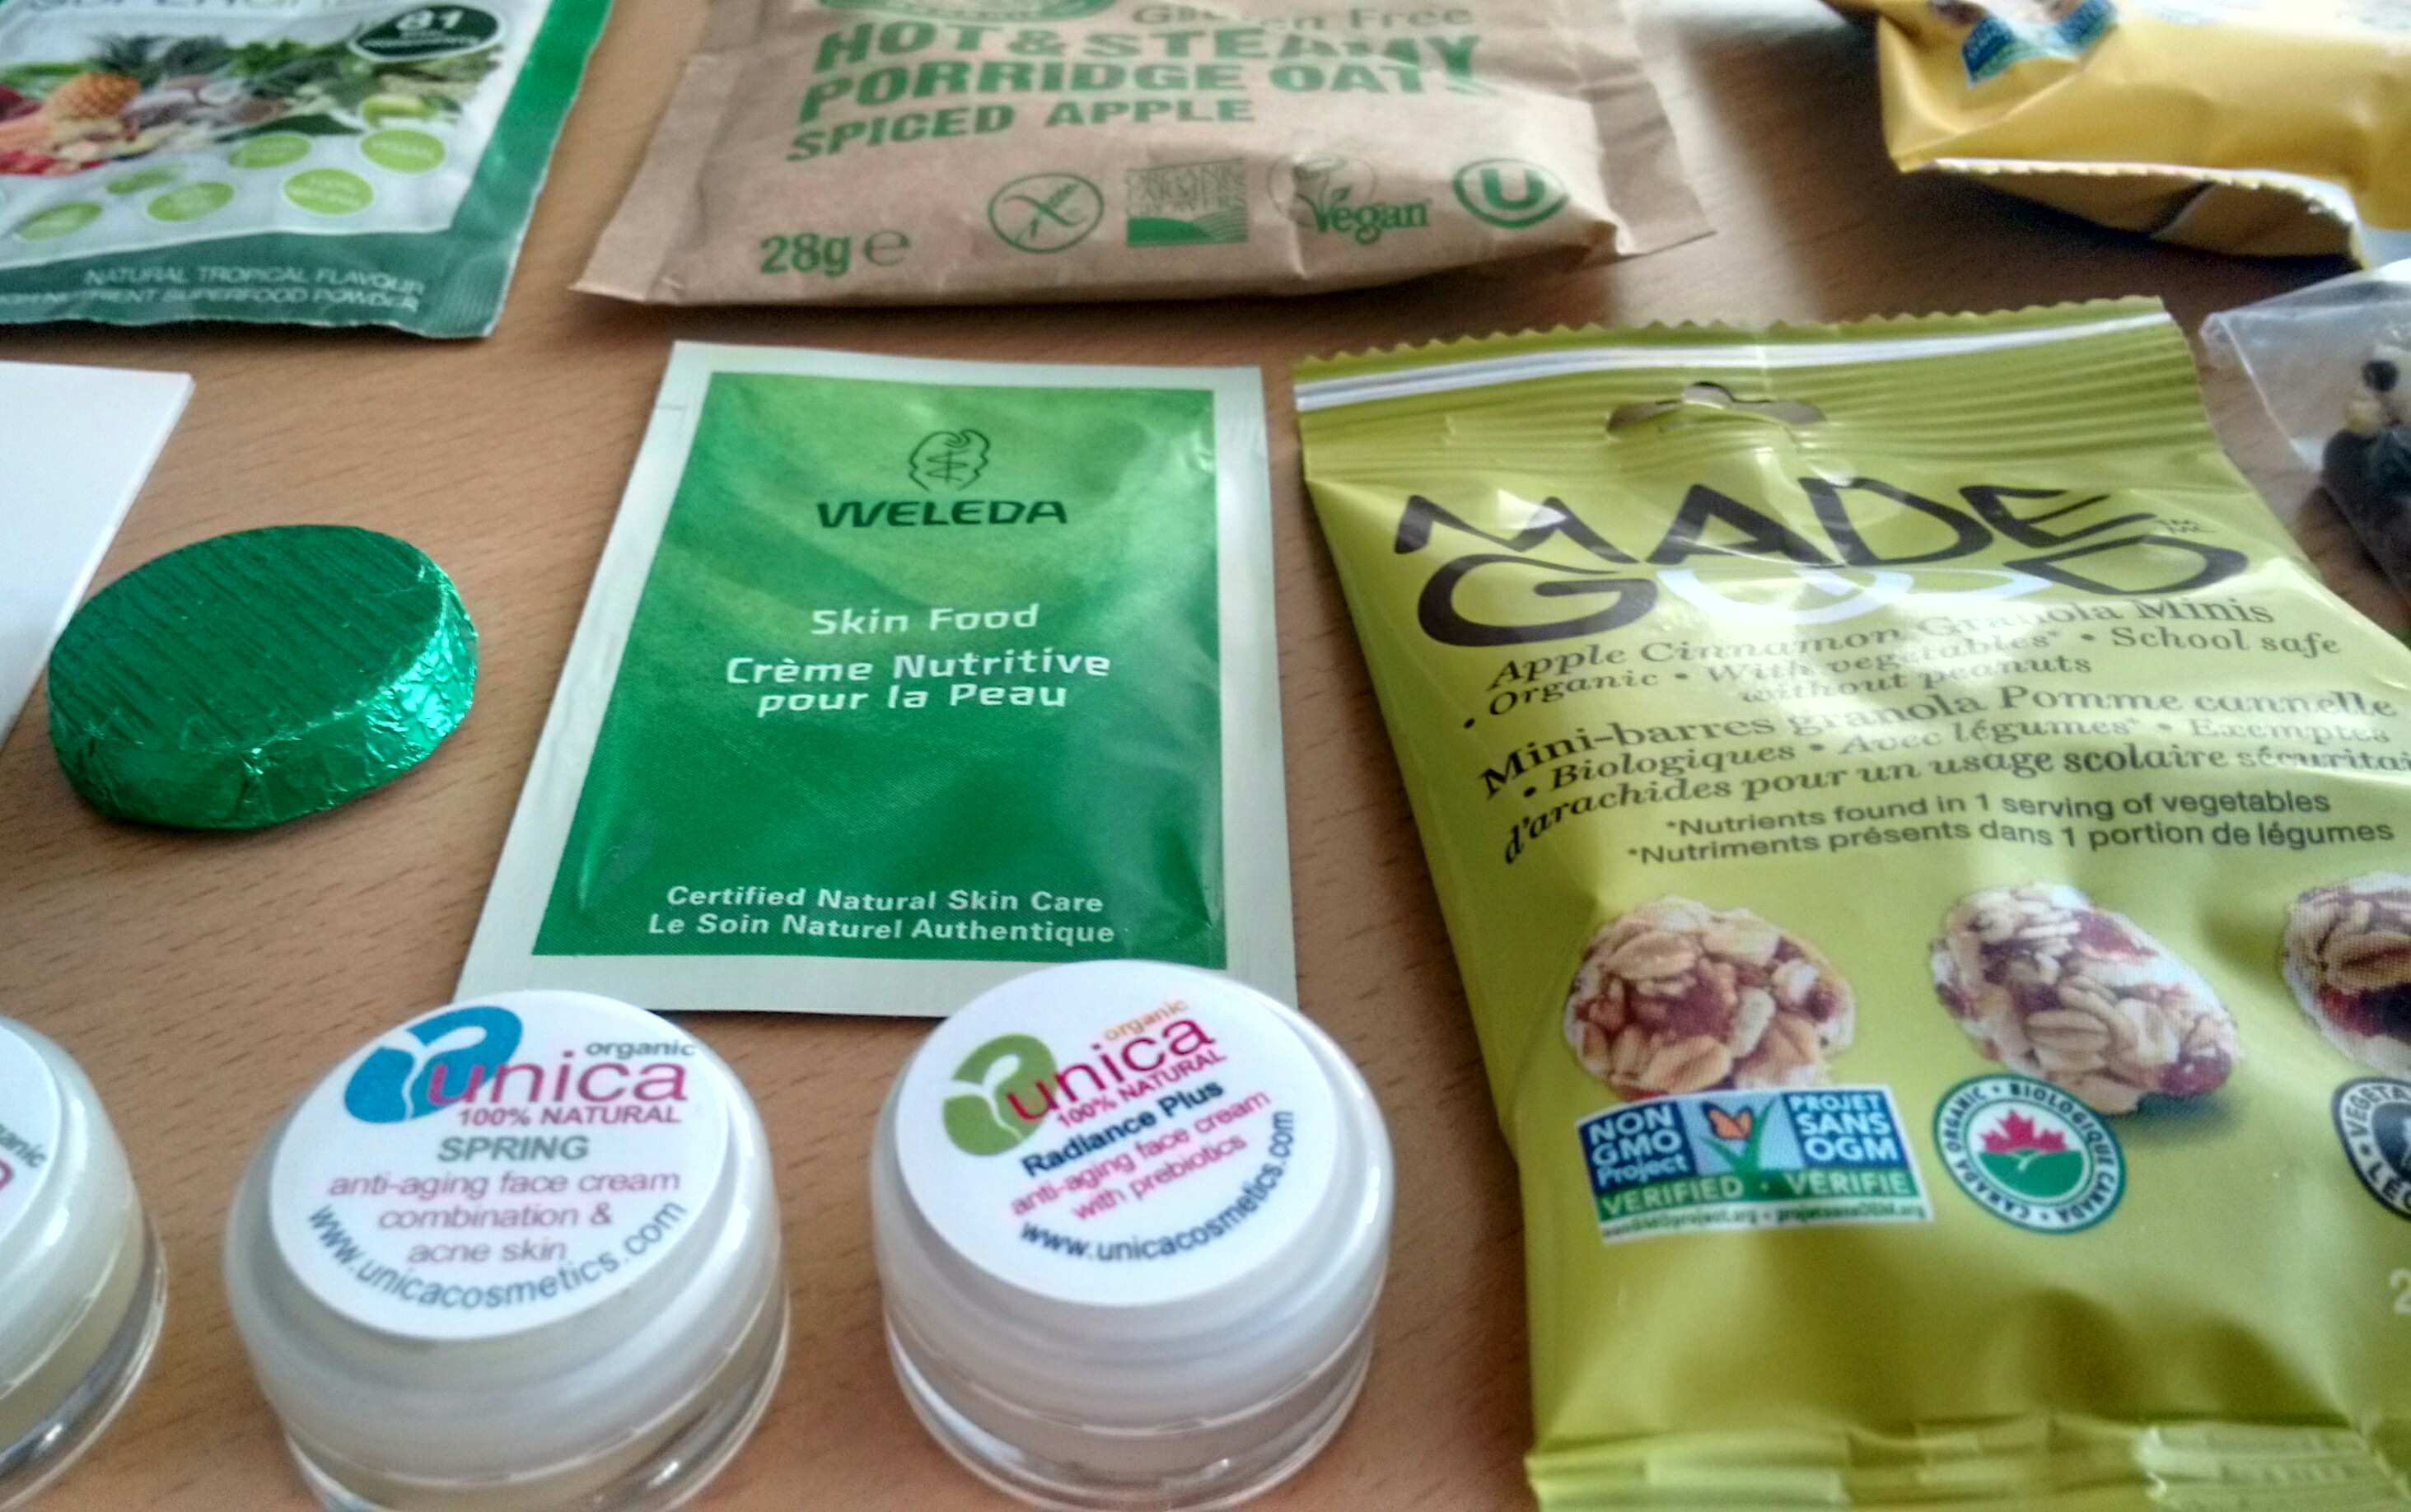 Love Natural Love Organic freebies